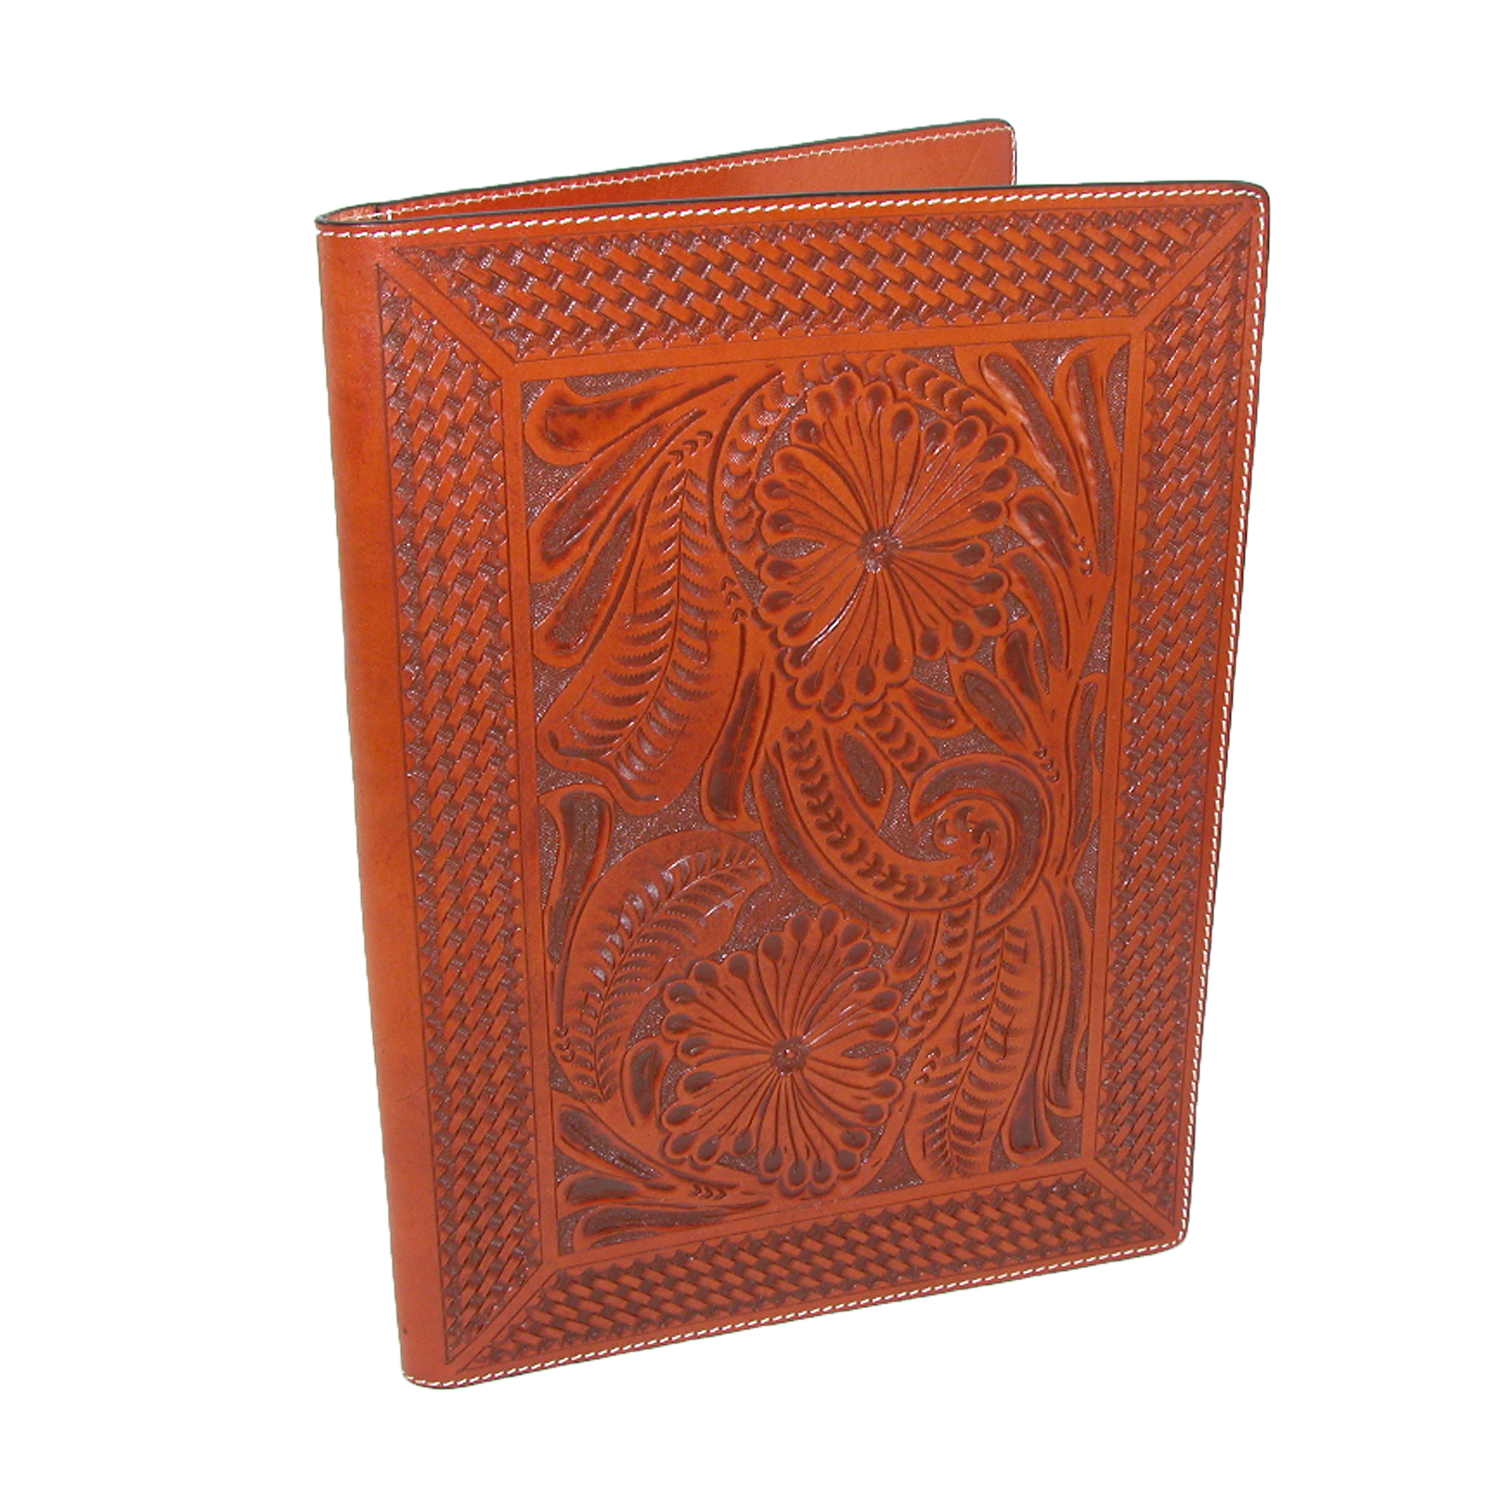 3D Western Pad Holder Leather Hand Tooled Floral Basketweave P10